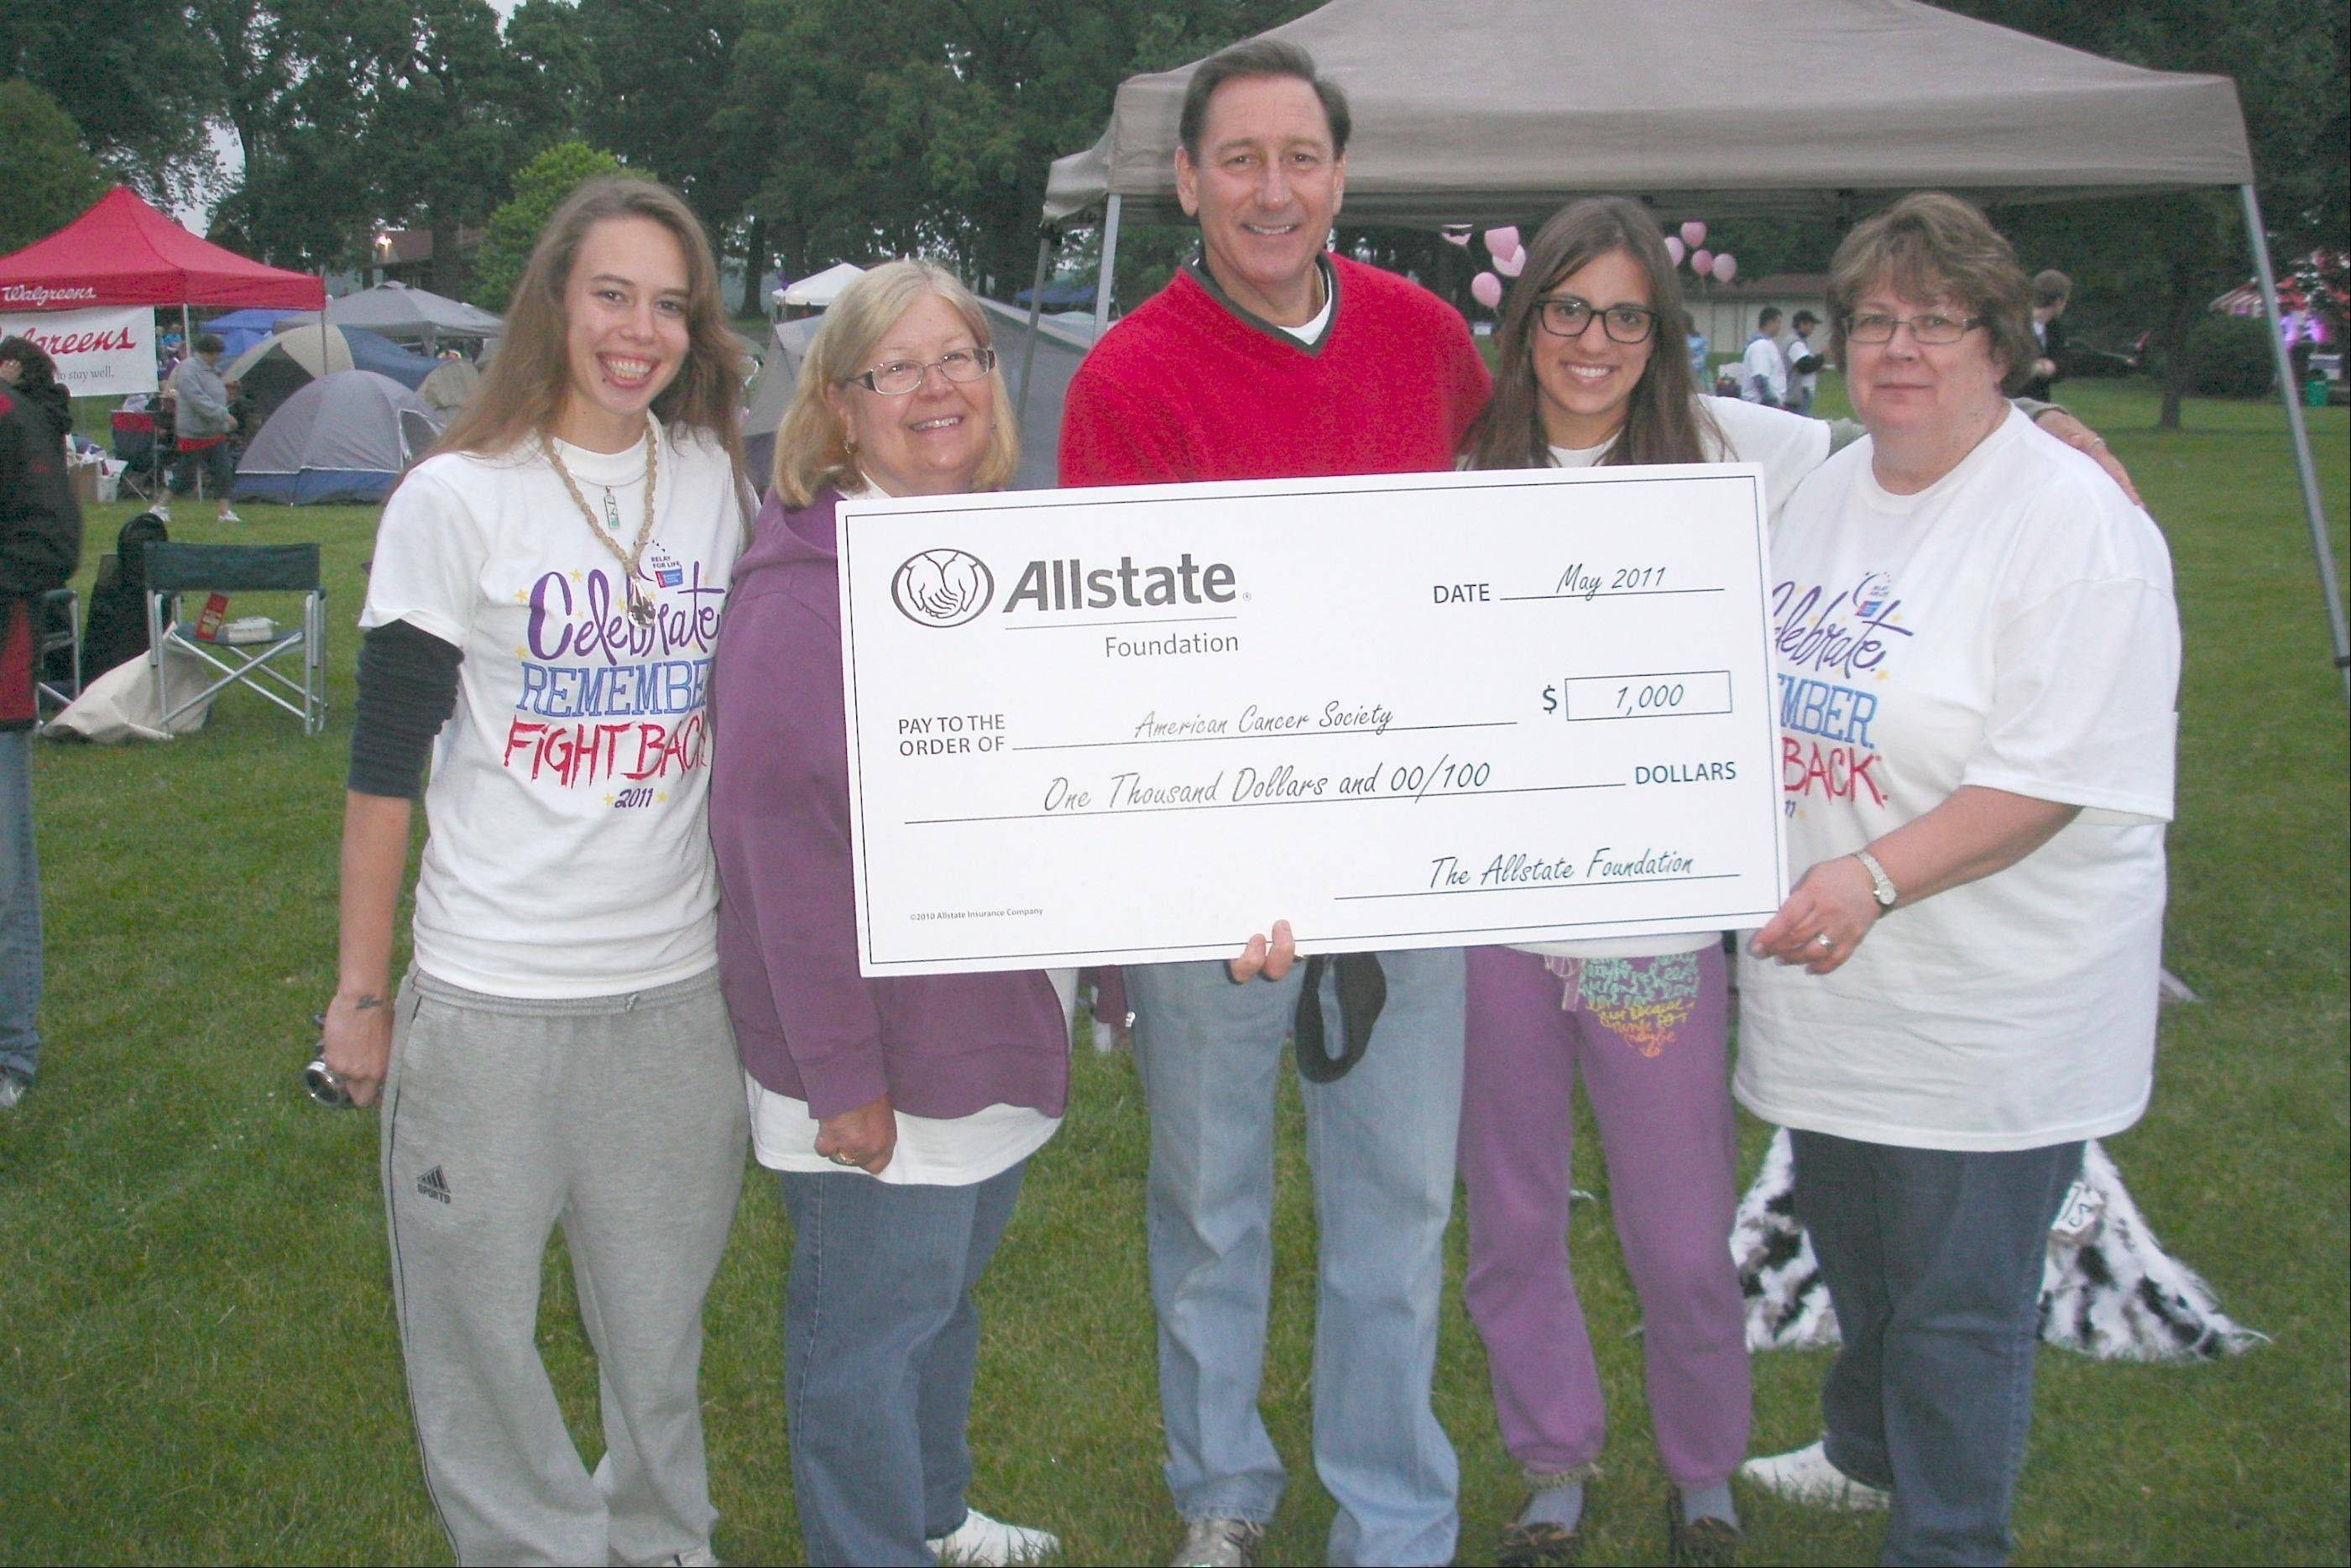 Phil Rutledge, center, is congratulated by Kati Campbell, from left Barb Crawford, Jenny Crawford and Geri Harrman.